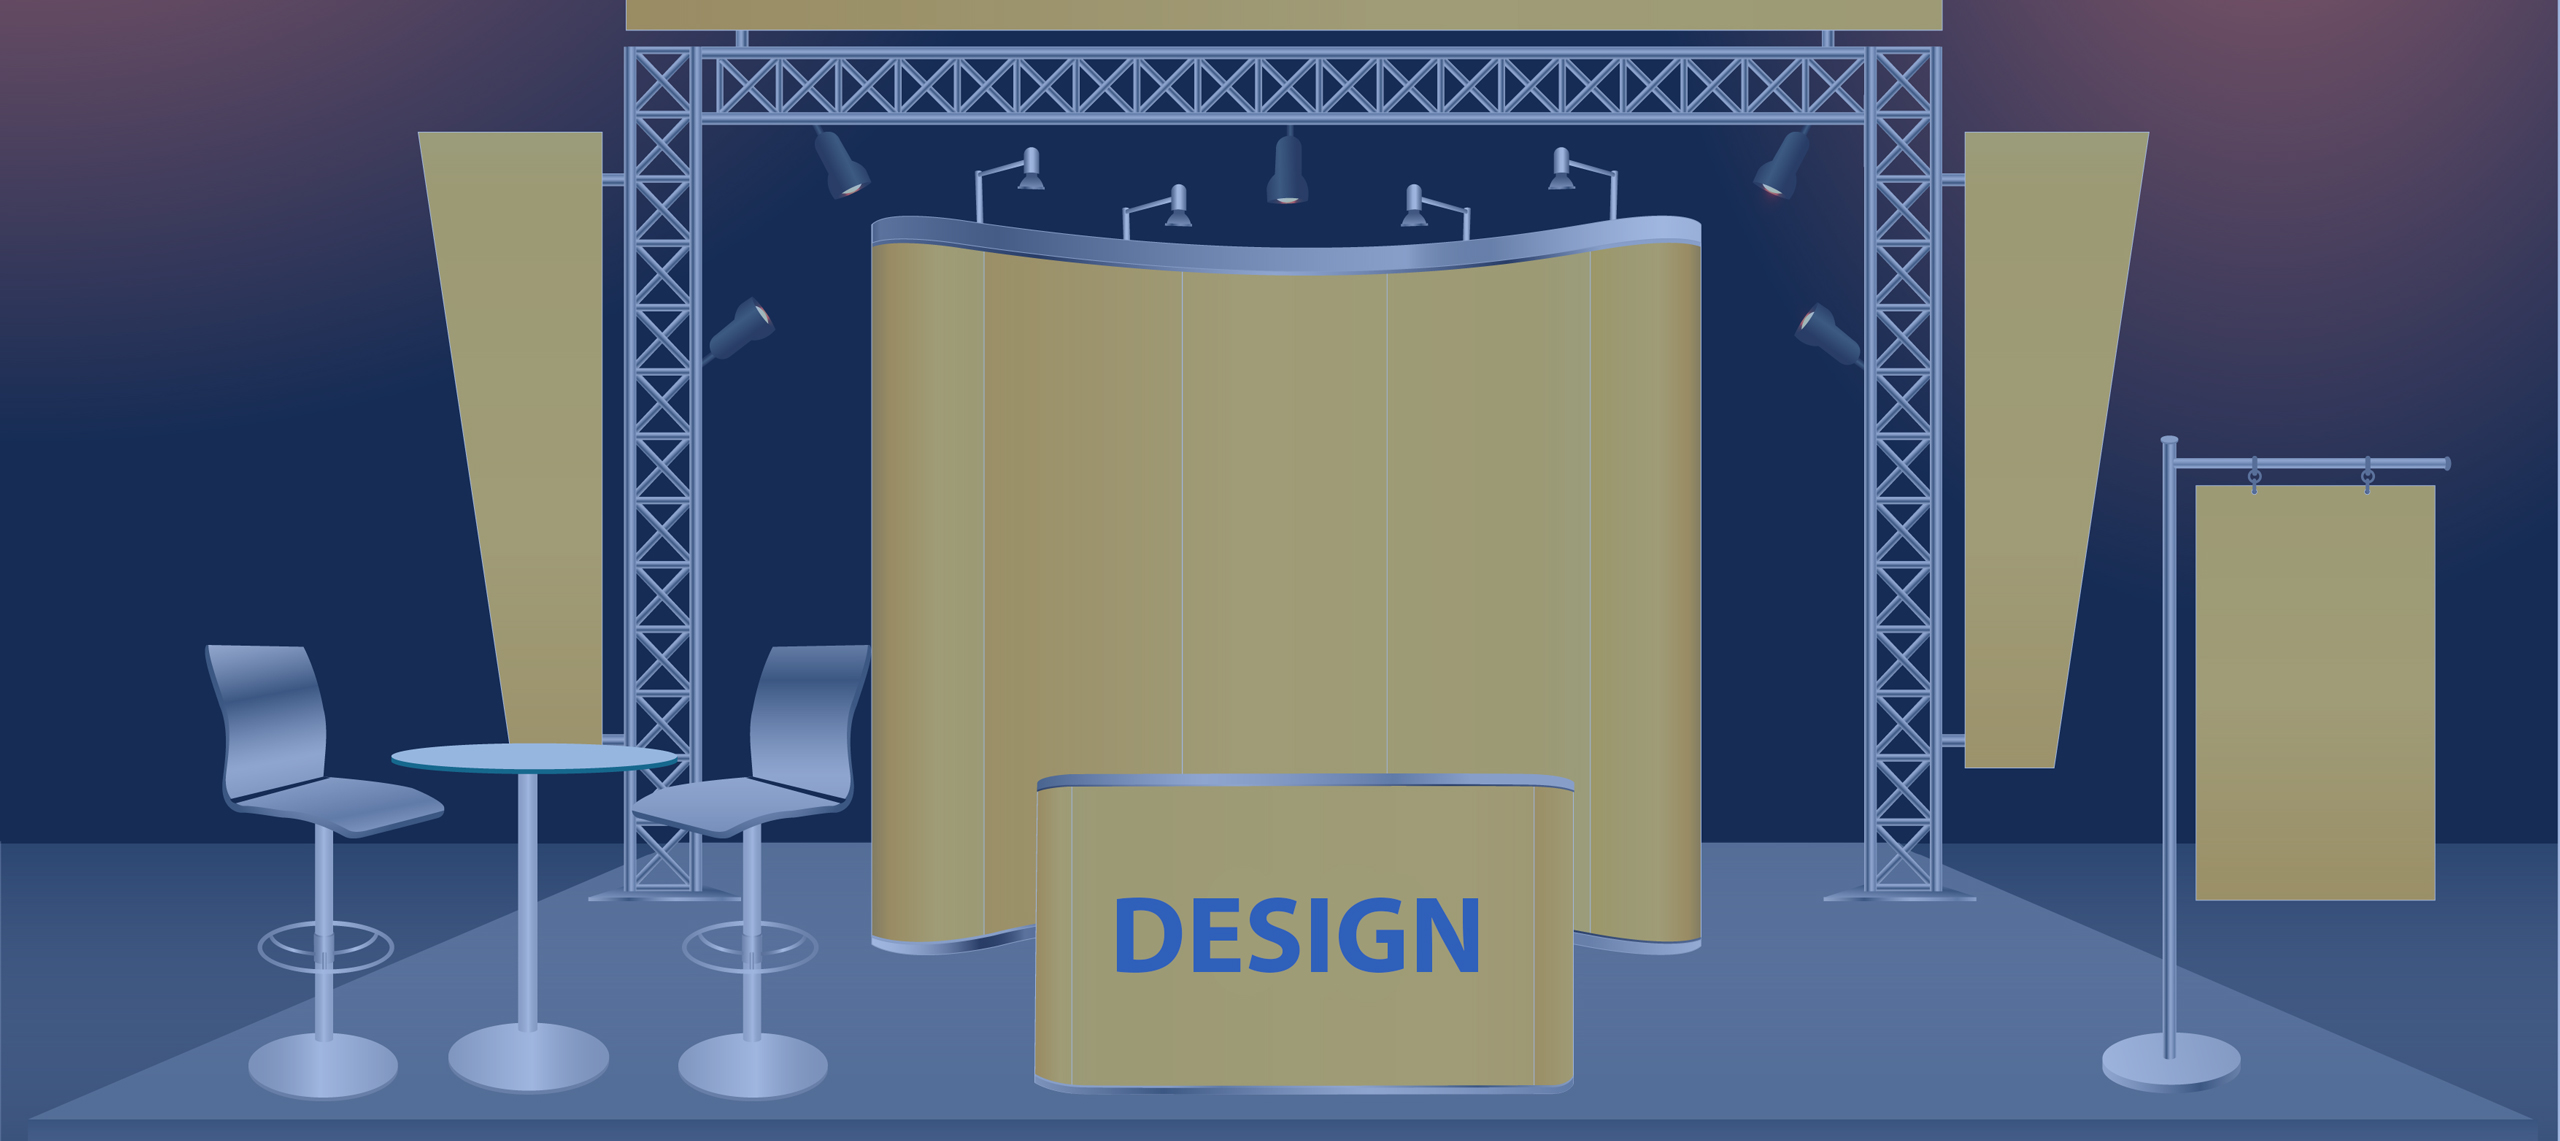 The 7 Essential Design Ideas for Your Trade Show Booth